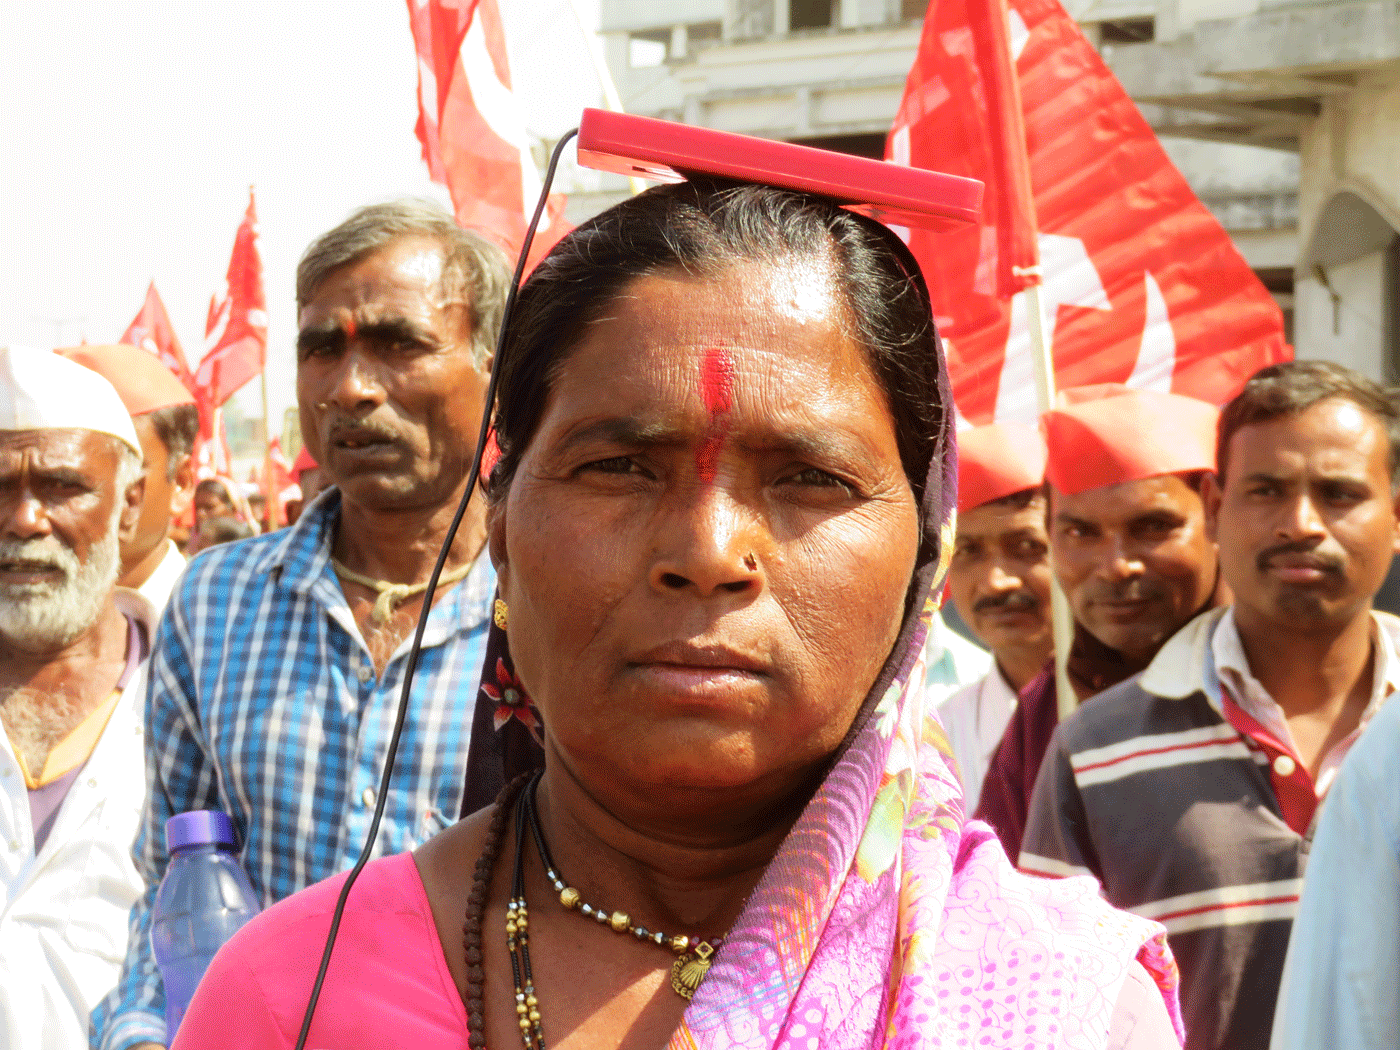 A woman during the March